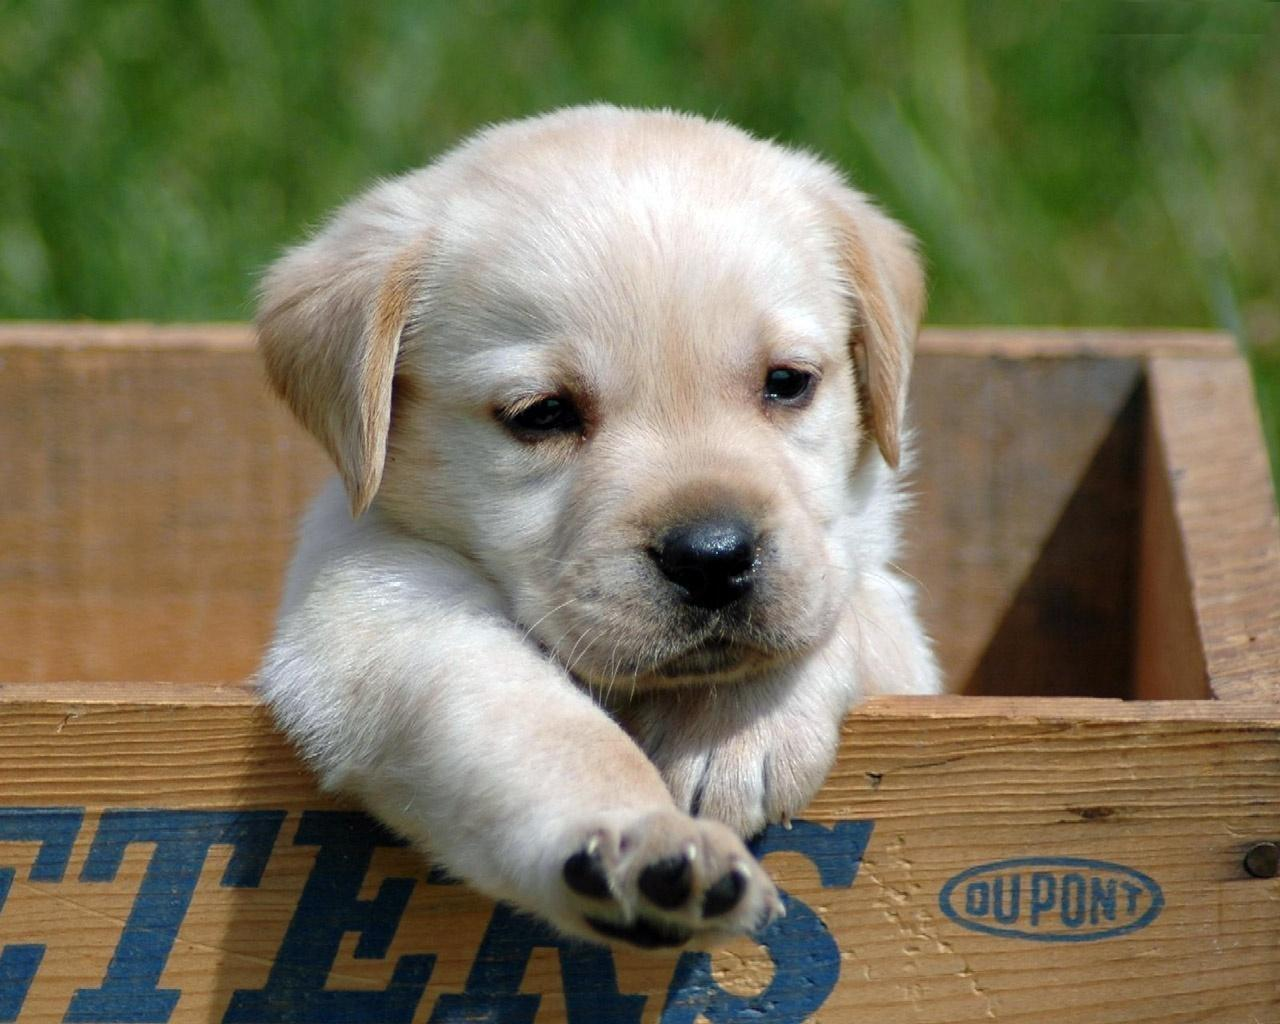 Pictures Of Puppies in a Box 156.34 Kb